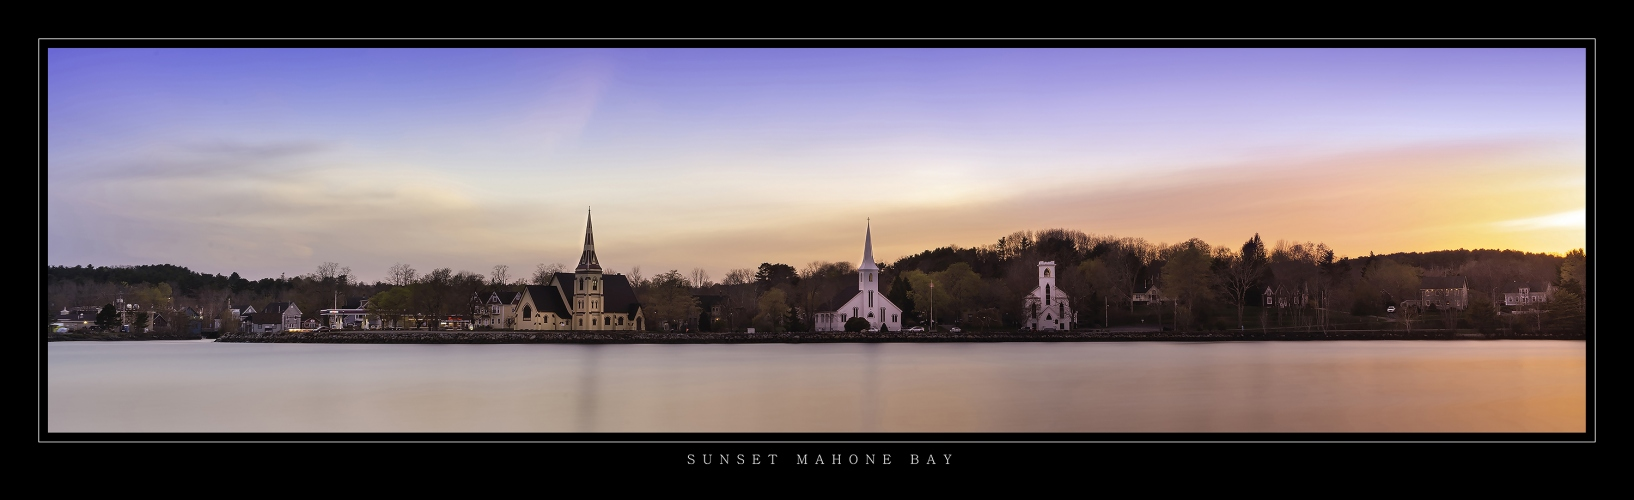 Panoramic picture of the three churches of St. John's Lutheran Church, St. James Anglican Church and the Trinity United Church in Mahone Bay, Nova Scotia at sunset